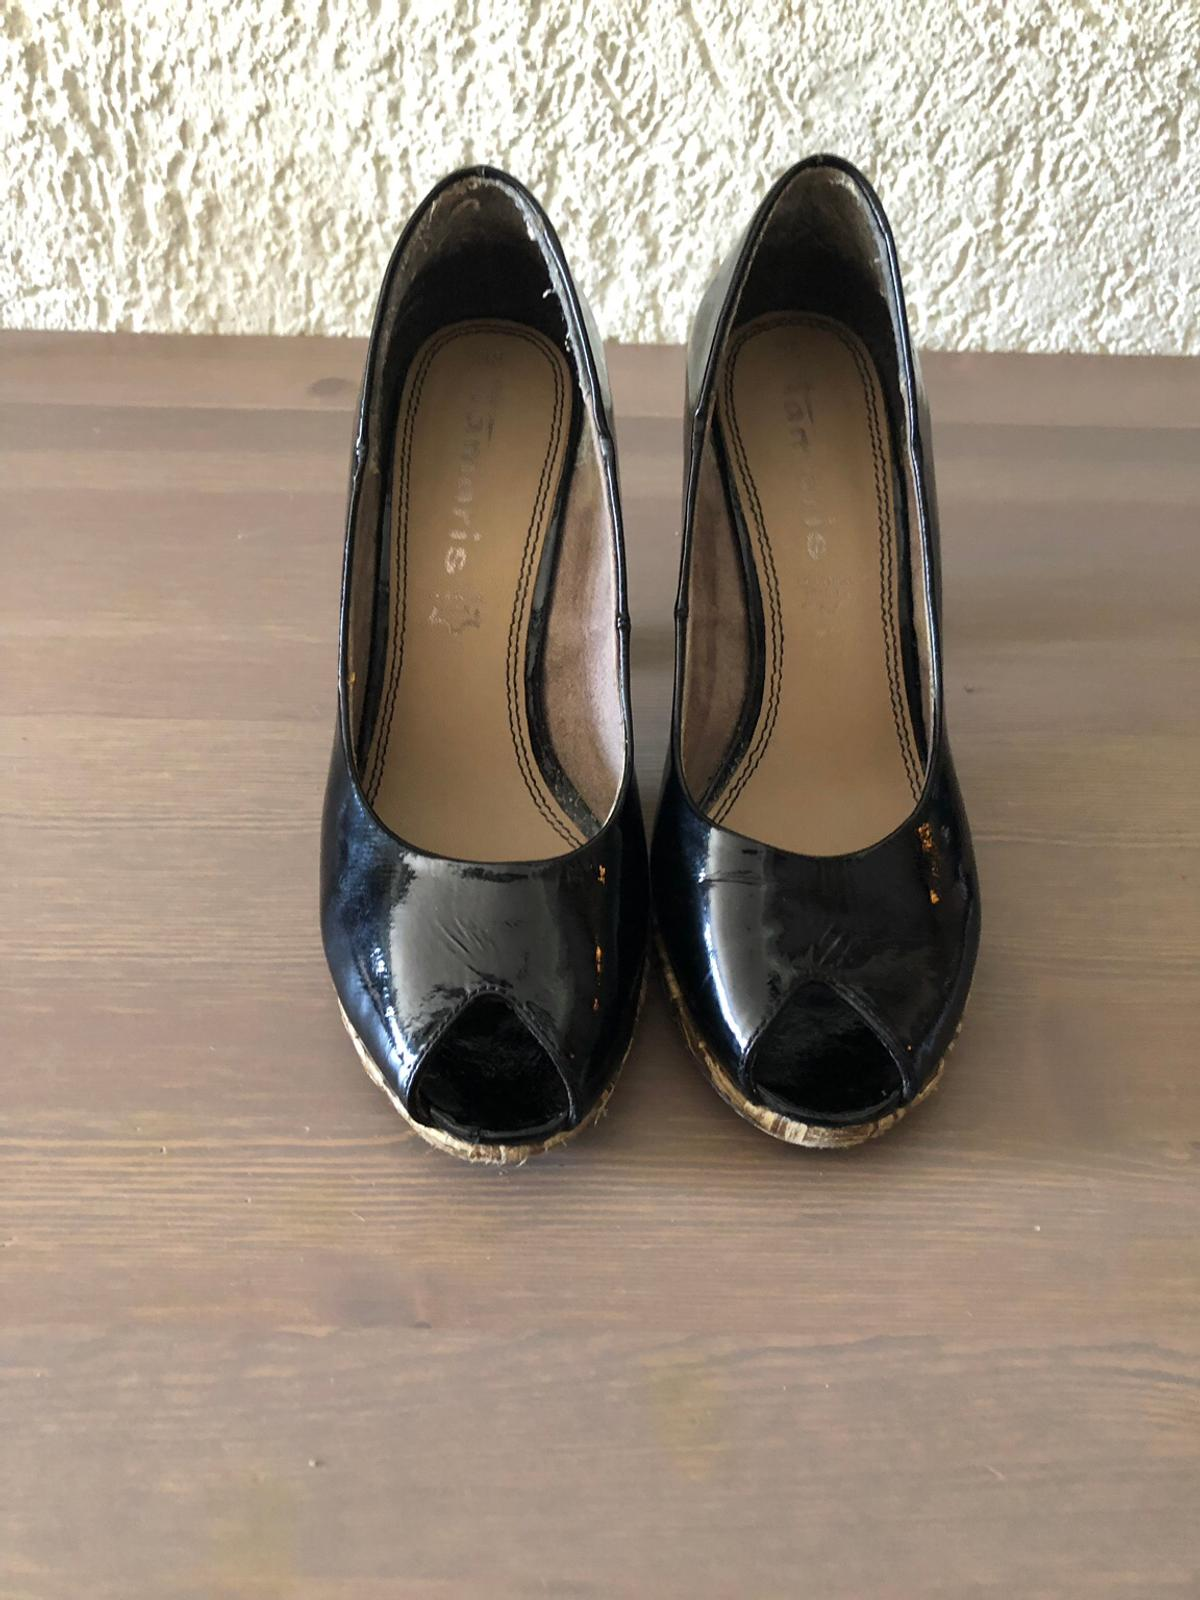 Schuhe in 95346 Stadtsteinach for €7.50 for sale | Shpock